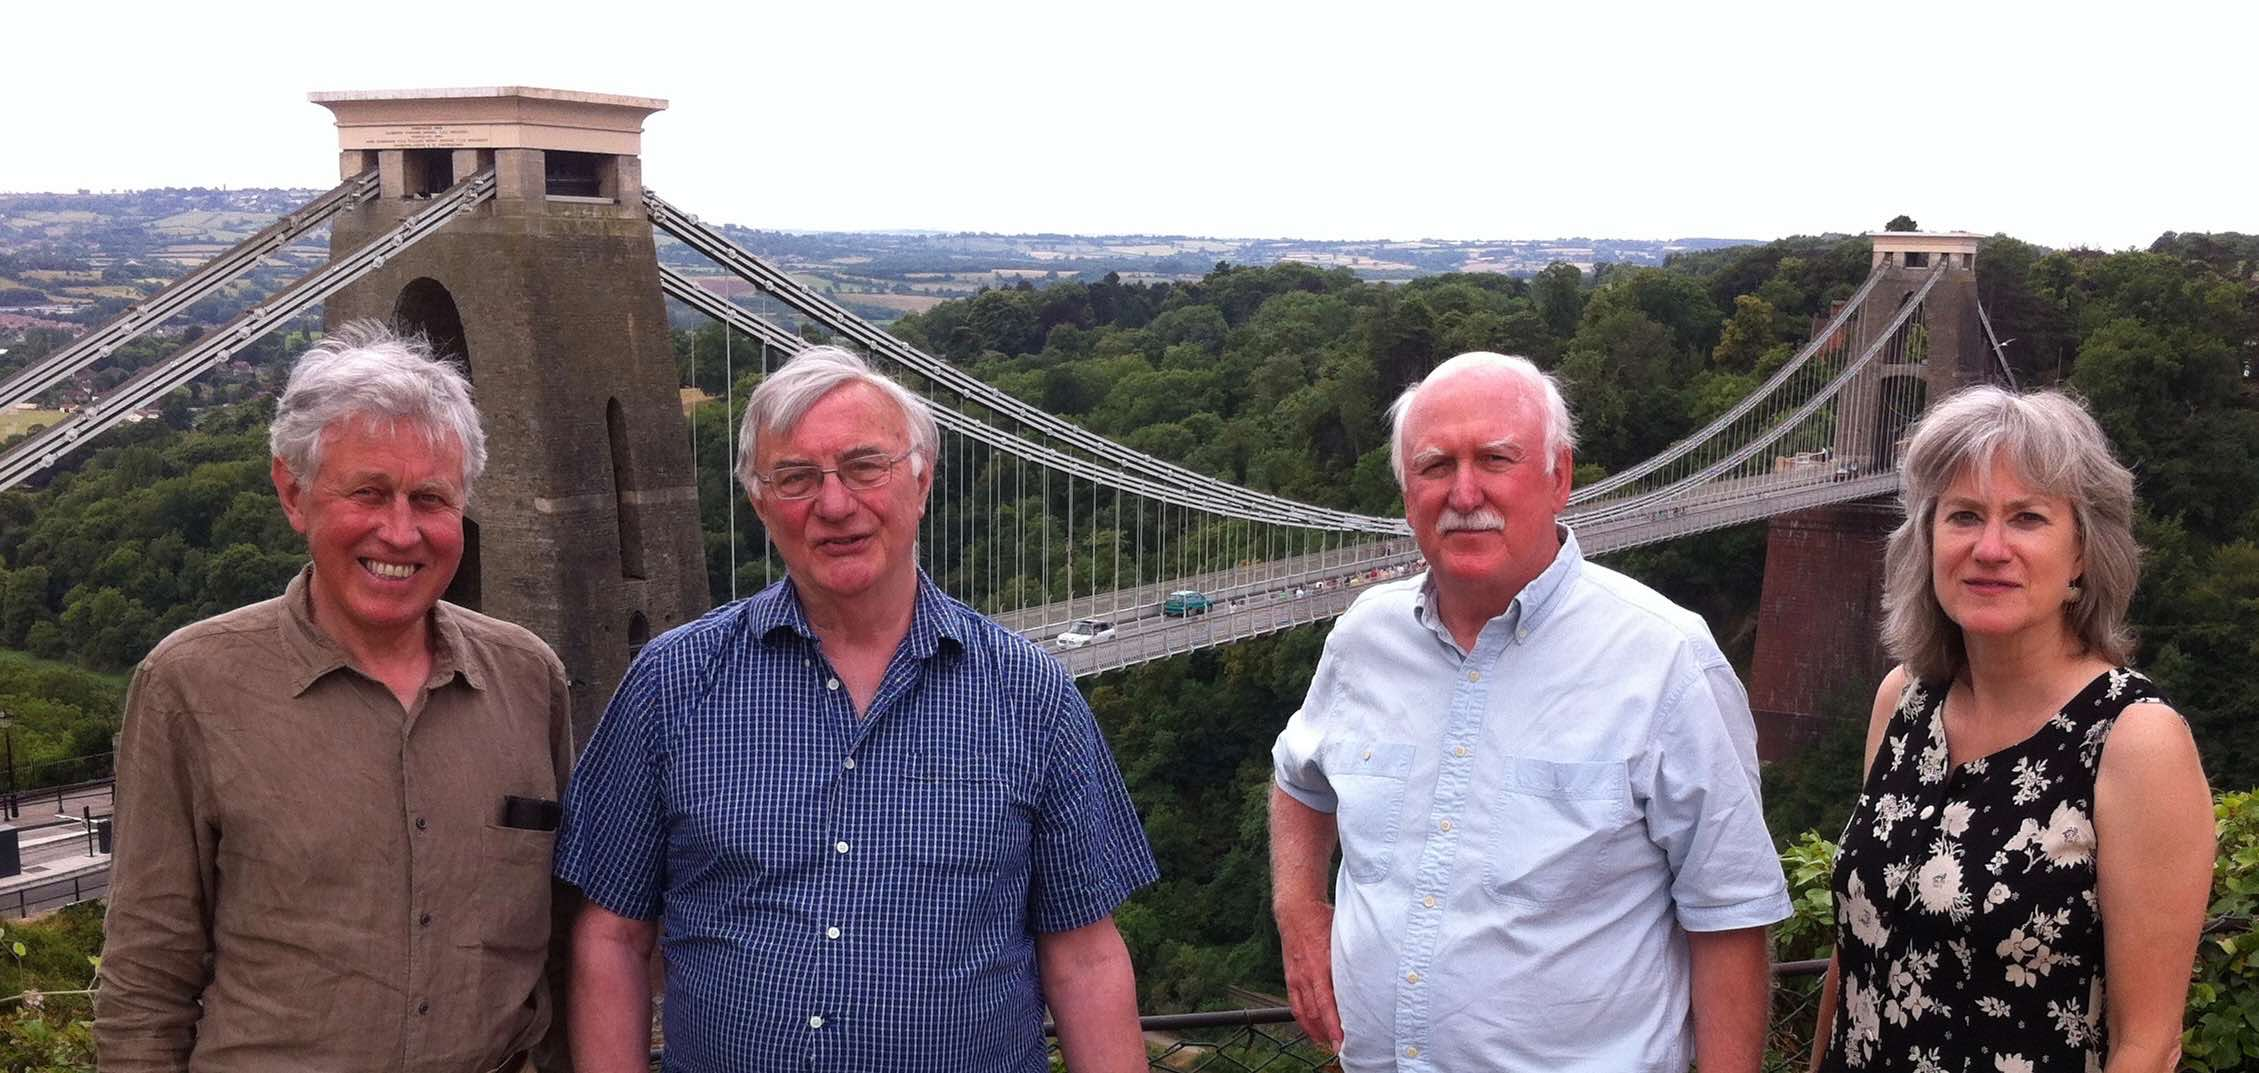 David, Norman and Jean with composer/writer Jan Swafford - at Clifton Suspension Bridge, Bristol, July 2013